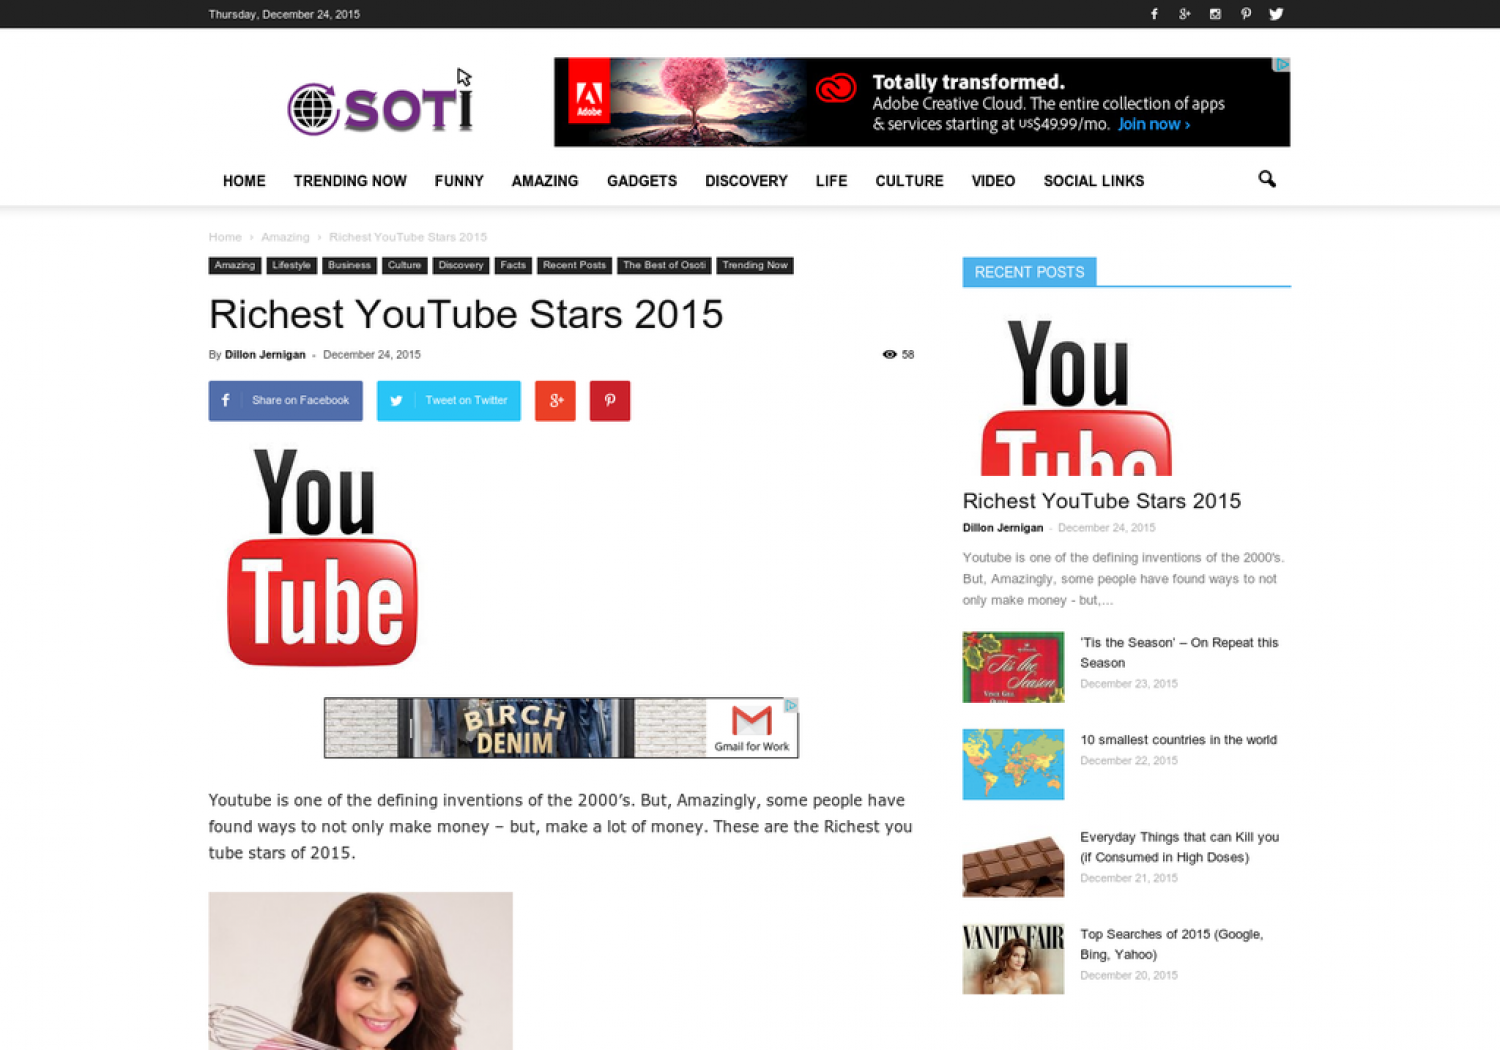 Richest YouTube Stars 2015 Infographic